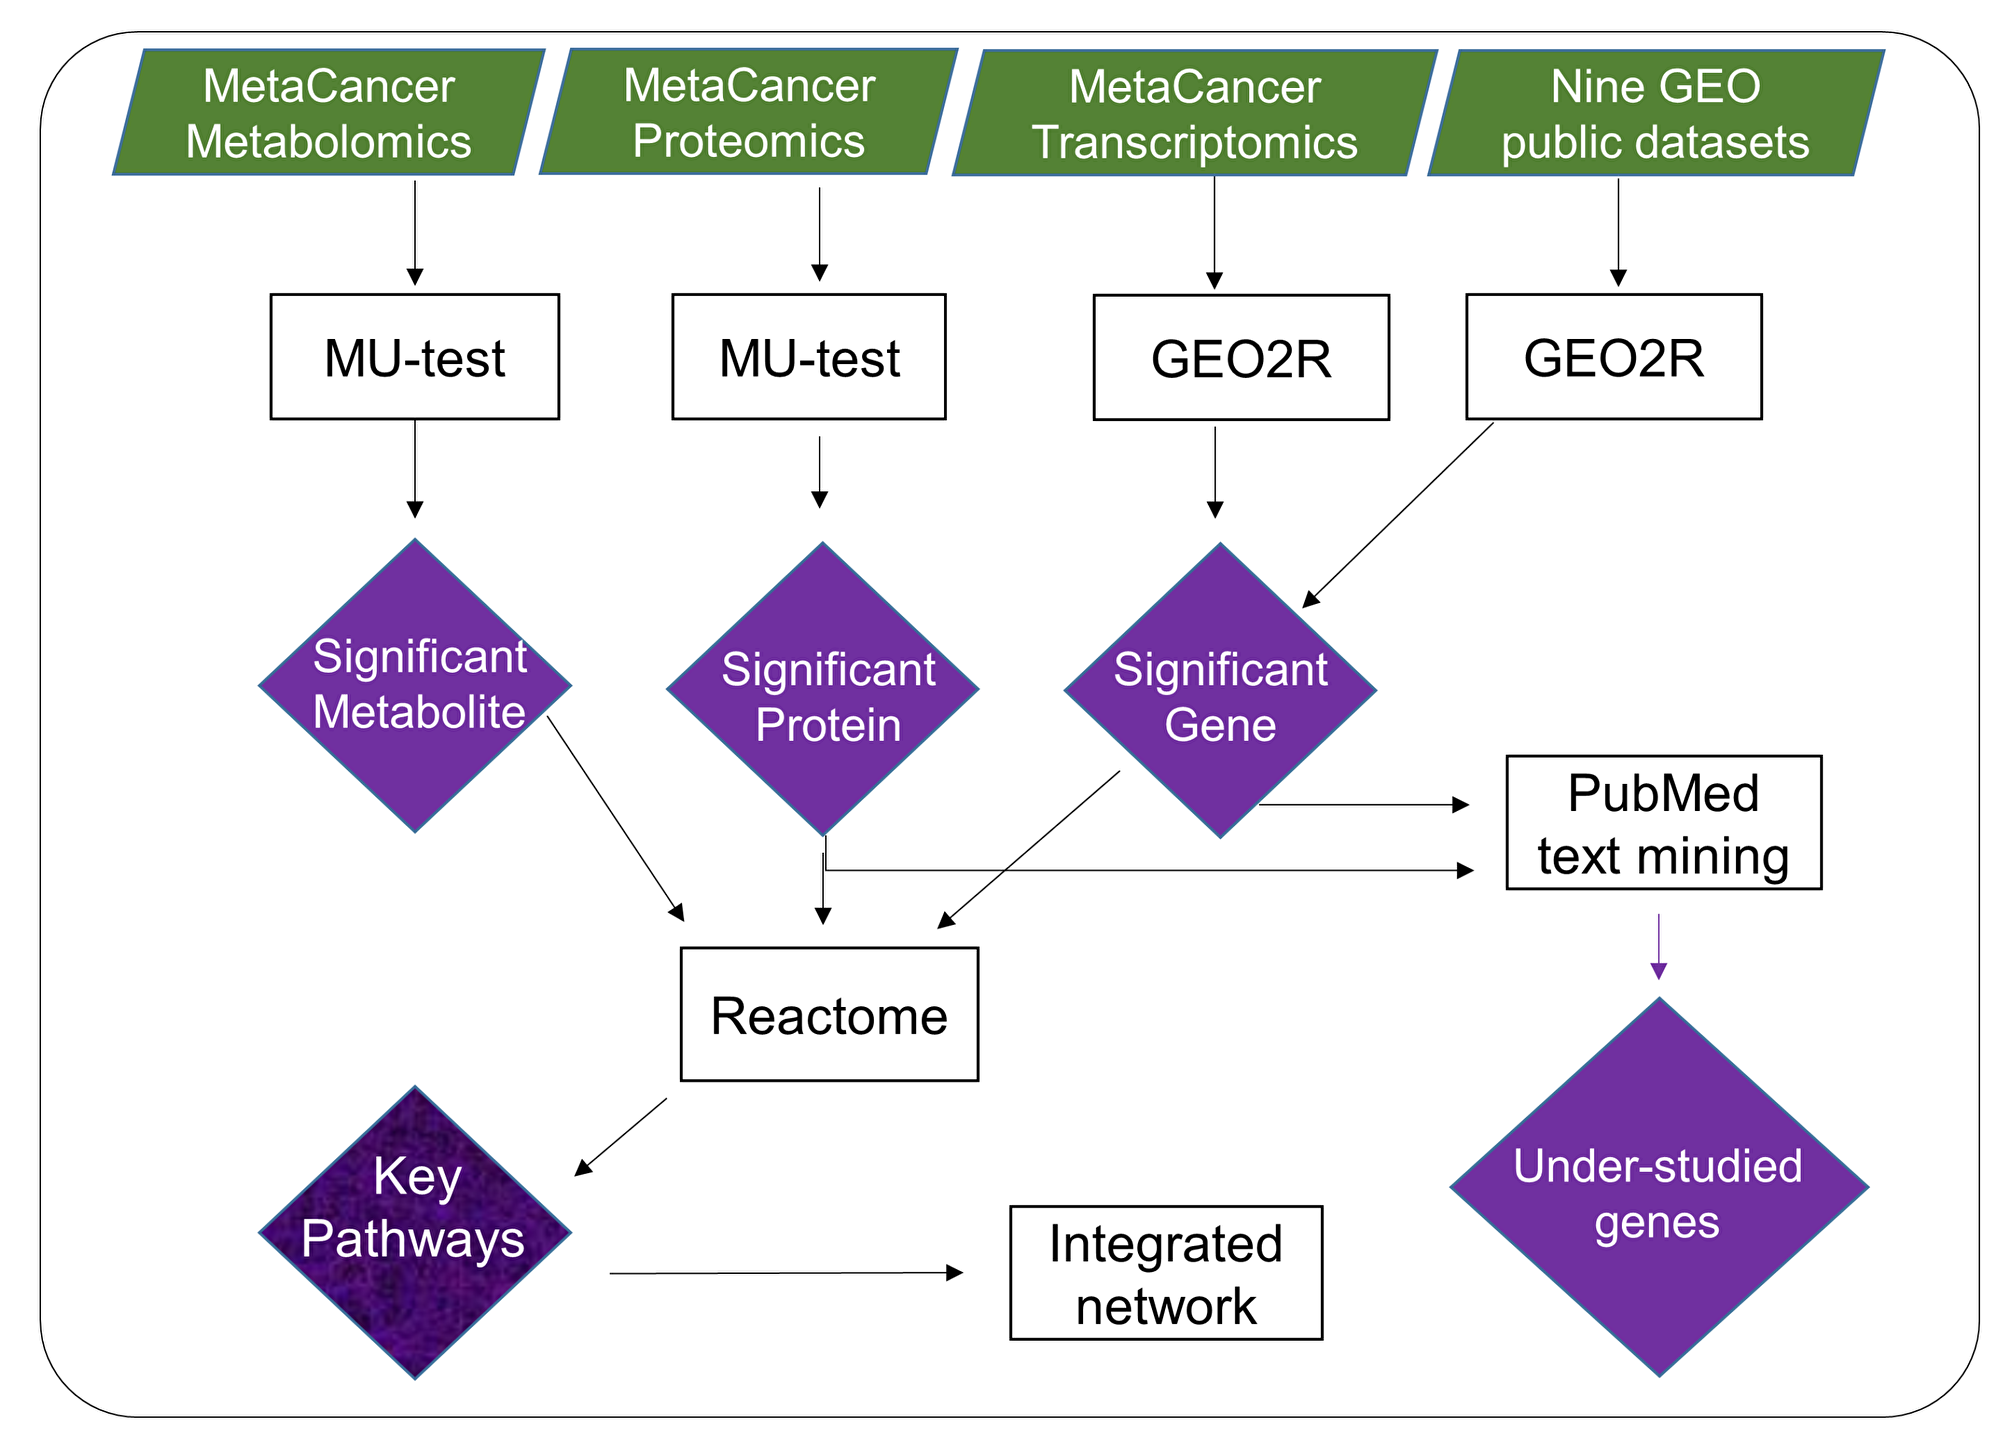 Overview of multi-omics data mining to reveal metabolic dysregulation by integrating raw p-values from metabolite, protein and gene expression analysis.